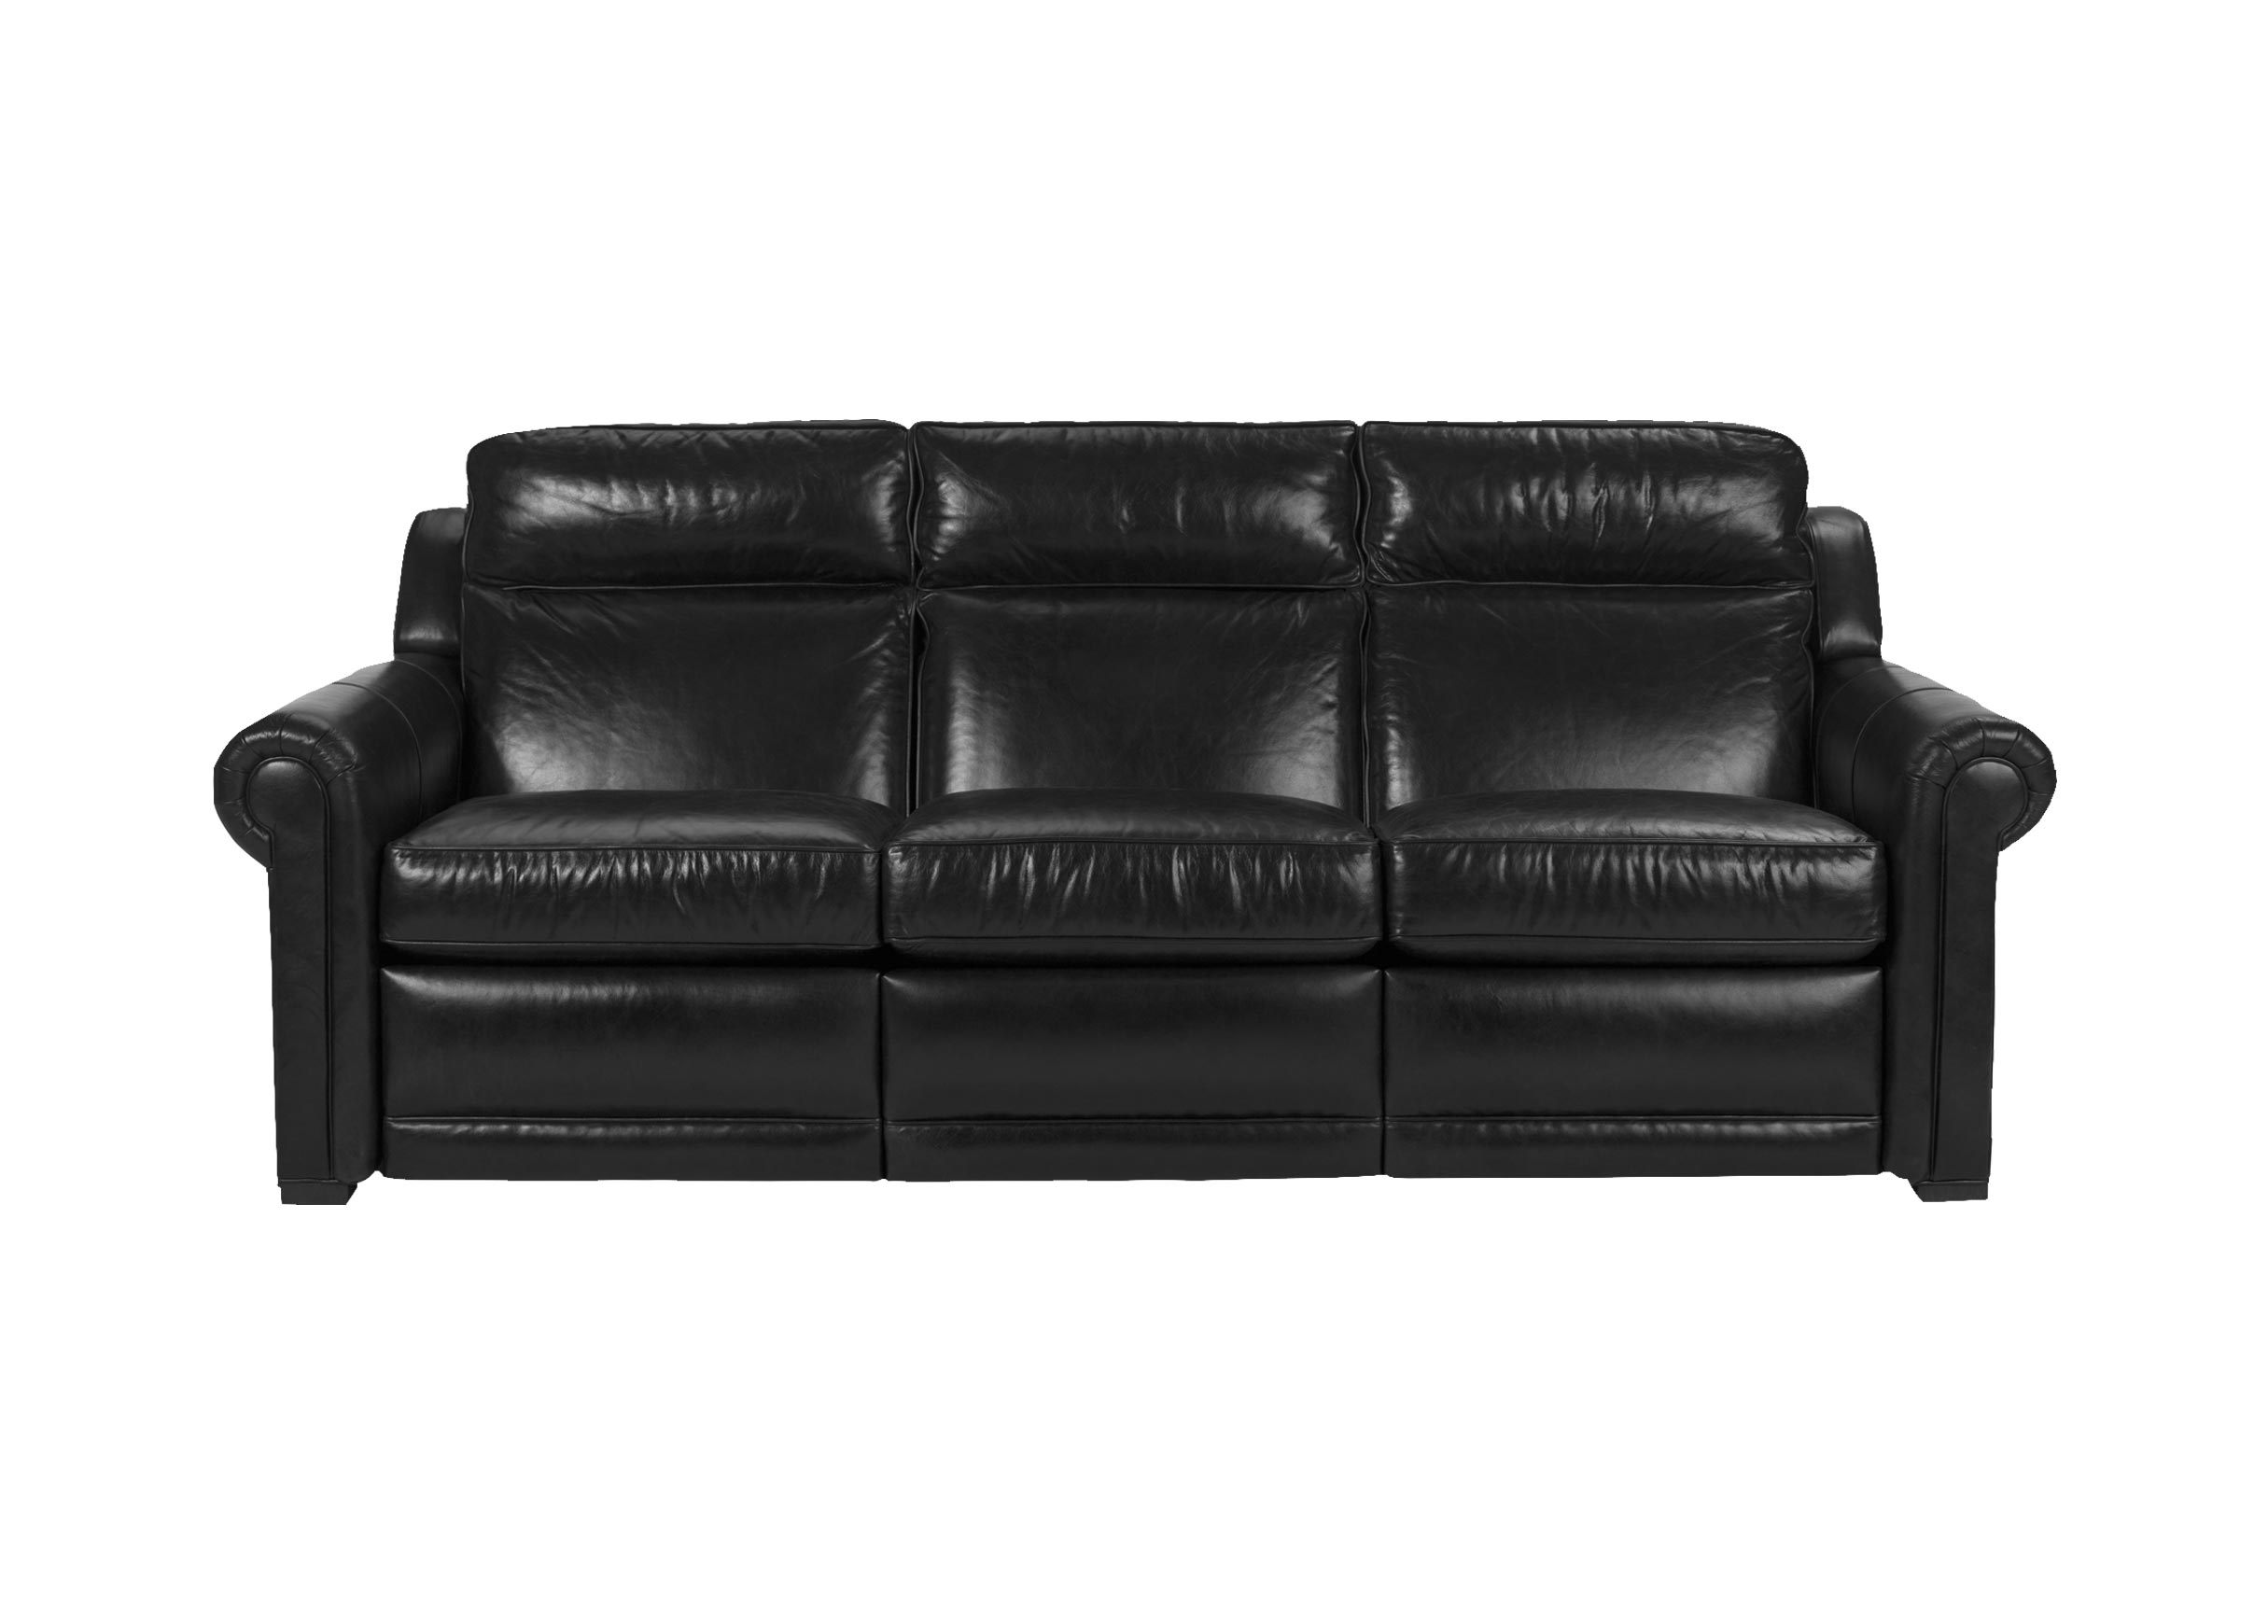 johnston roll arm leather incliner sofa sofas loveseats images johnston roll arm leather incliner sofa large gray